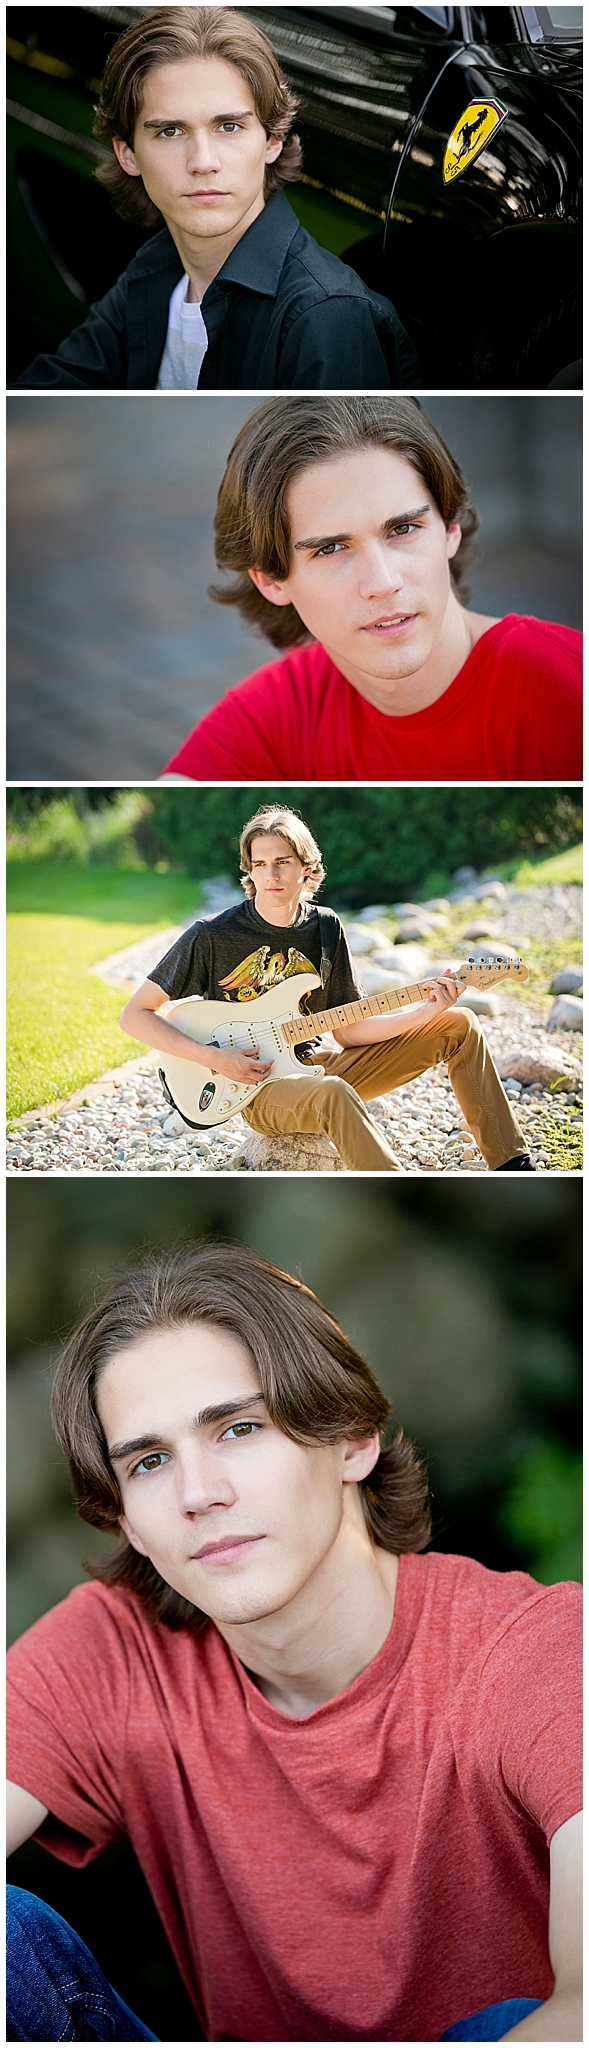 Kim-Thiel-Photography-Senior-Guy-Portraits